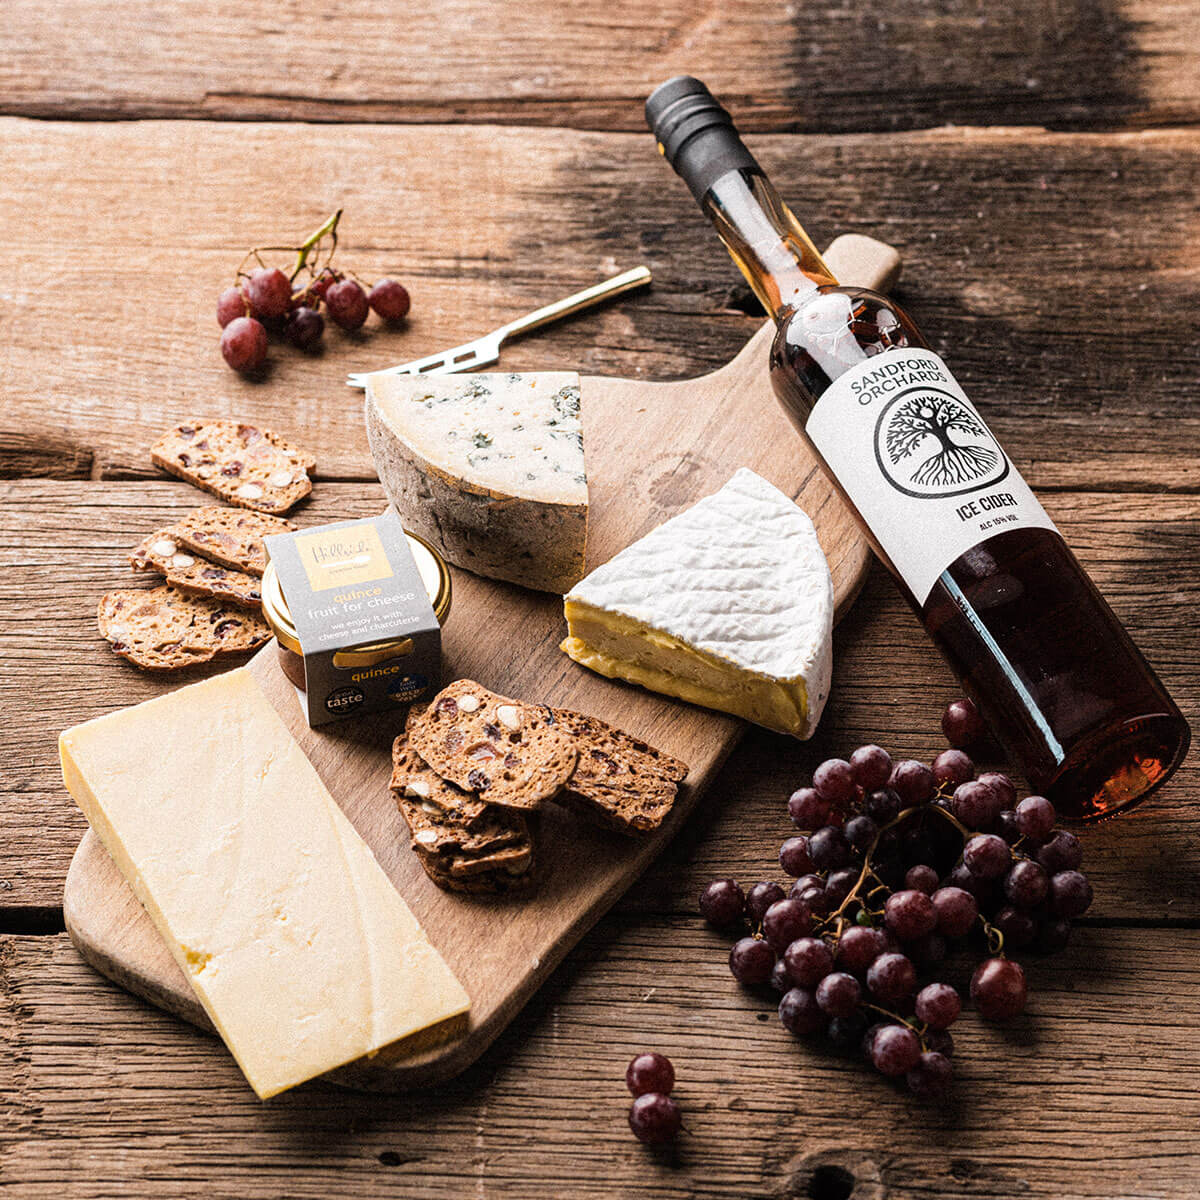 Best of the West Cheese Board Tasting Experience